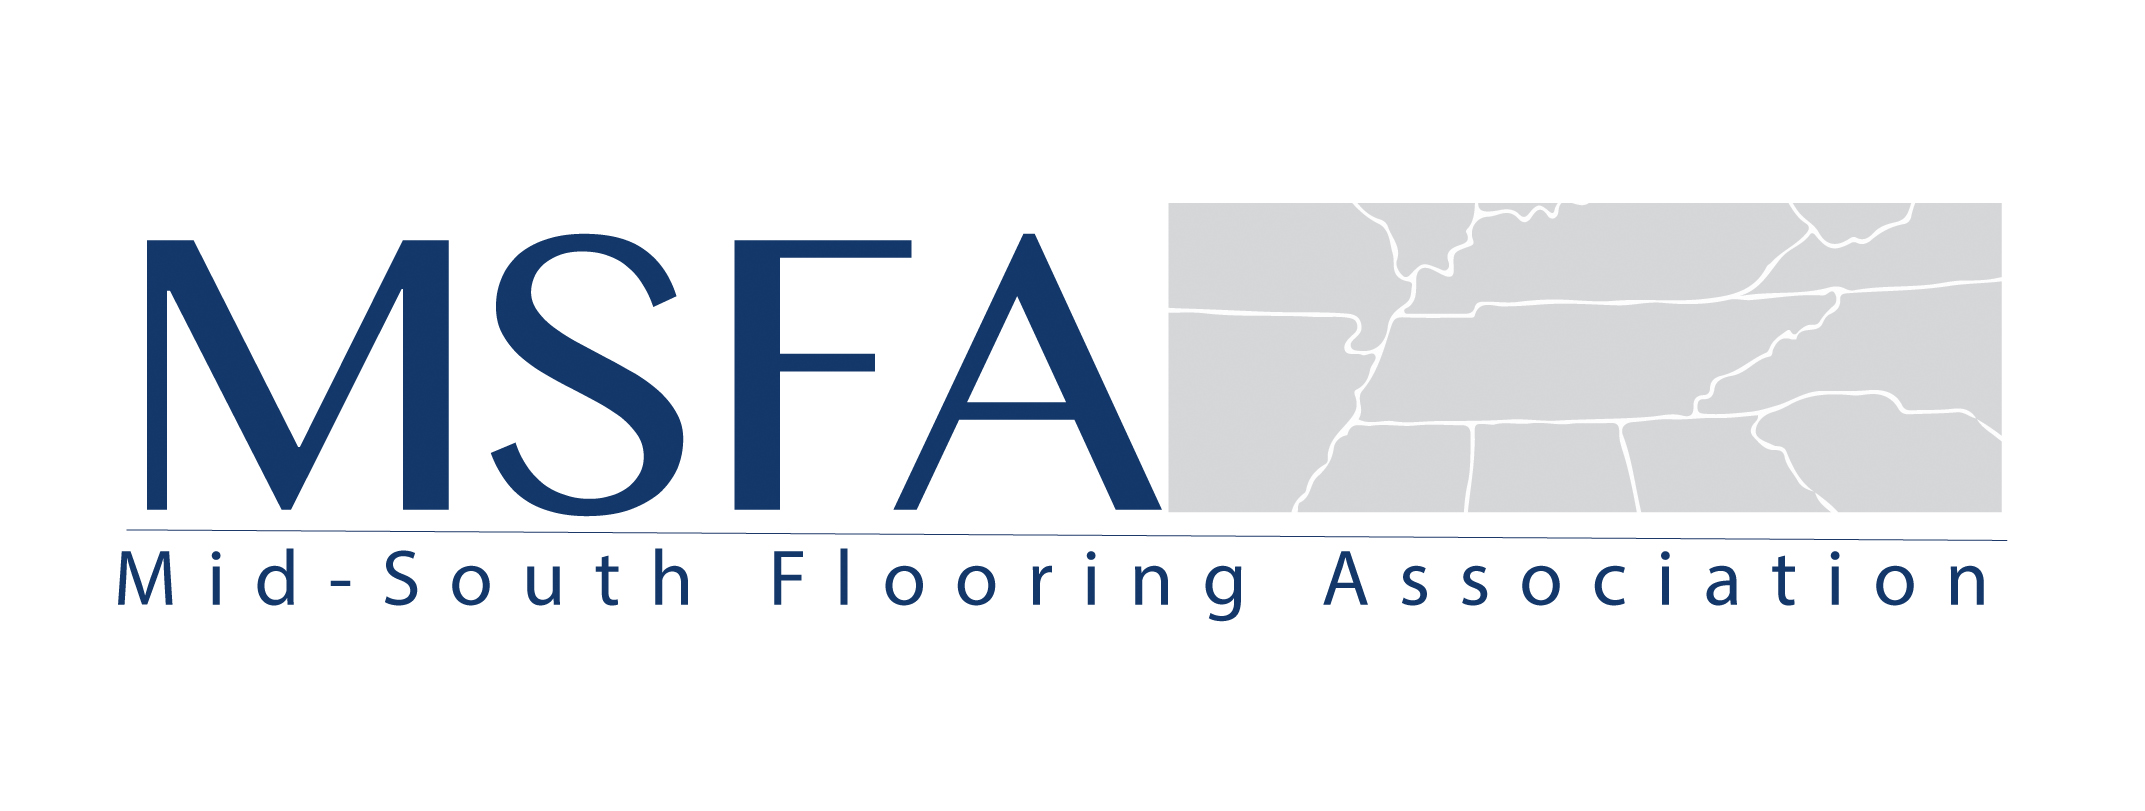 World Flooring Association Thefloors Co